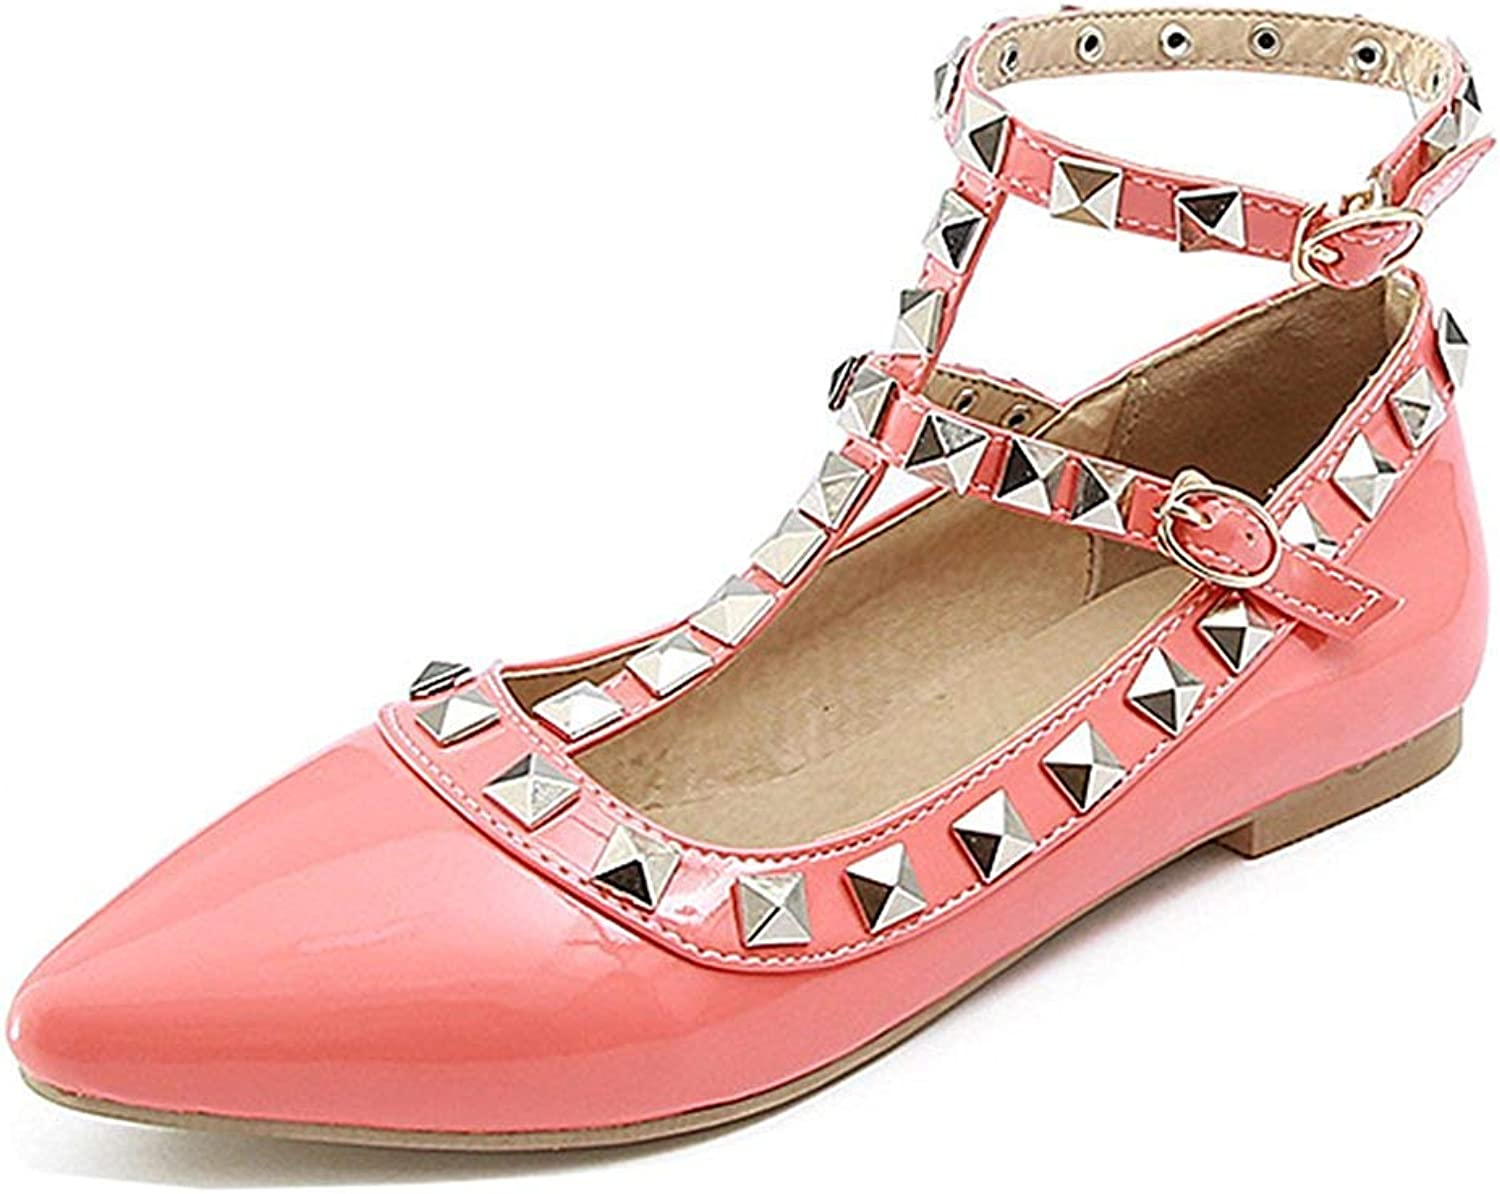 Unm Women's Pointed Toe Flats shoes with Studs - Buckled Ankle T Strap - Comfort Burnished